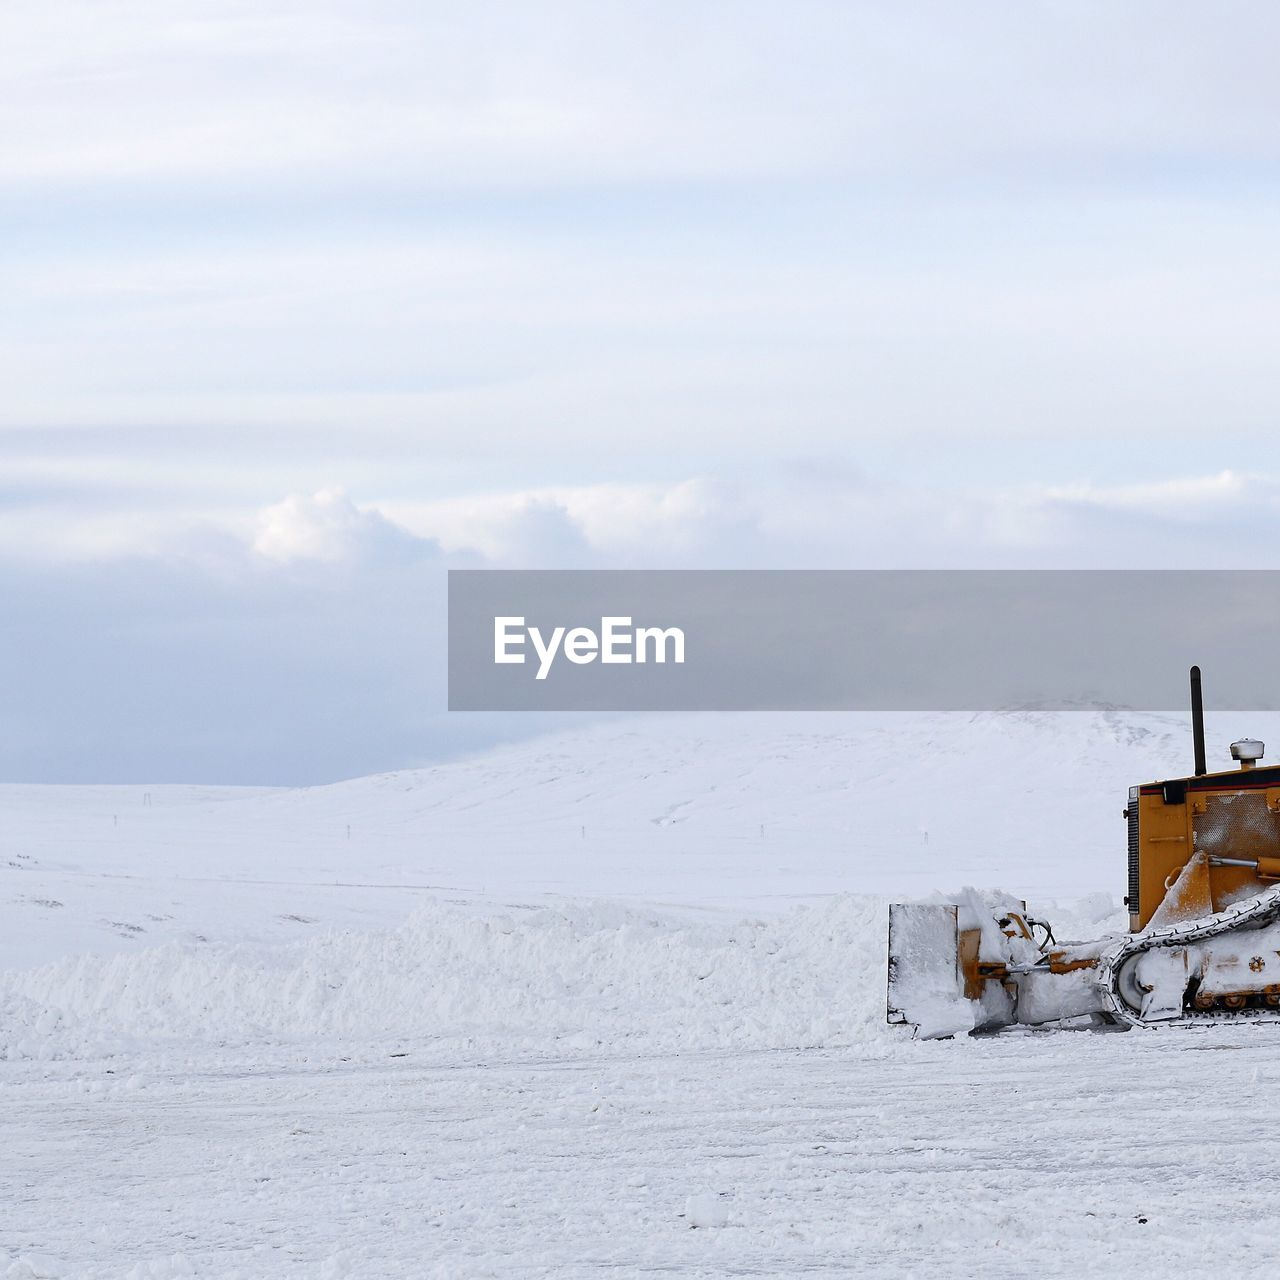 Snowplow on snow covered field against sky